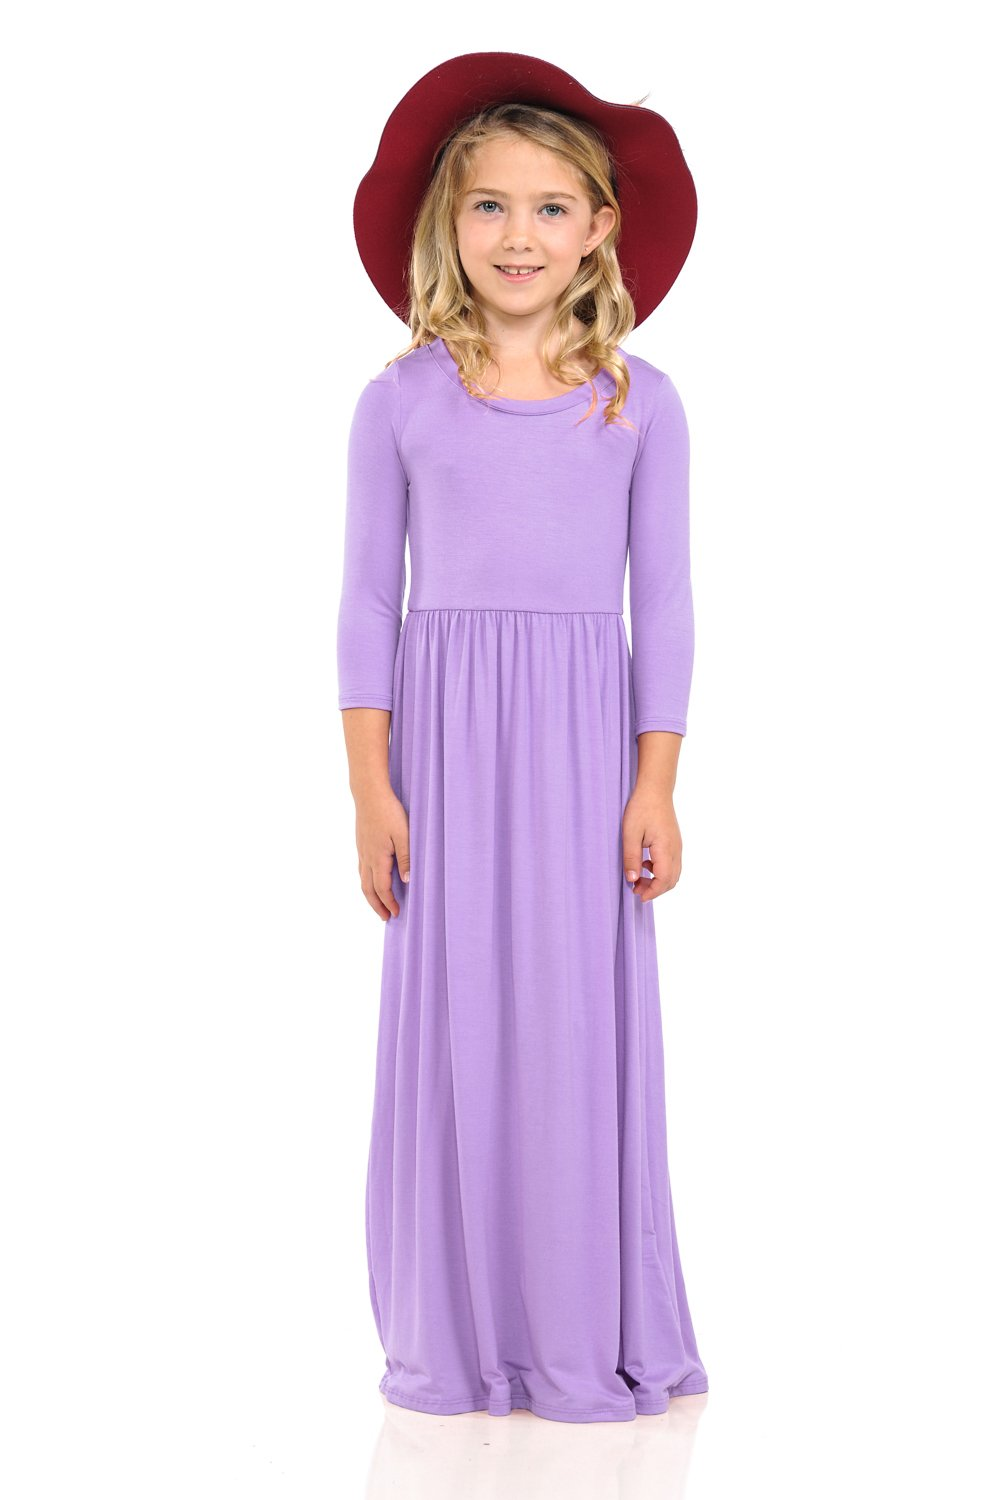 Pastel by Vivienne Honey Vanilla Girls' Fit and Flare Maxi Dress Large 9-10 Years Lavender